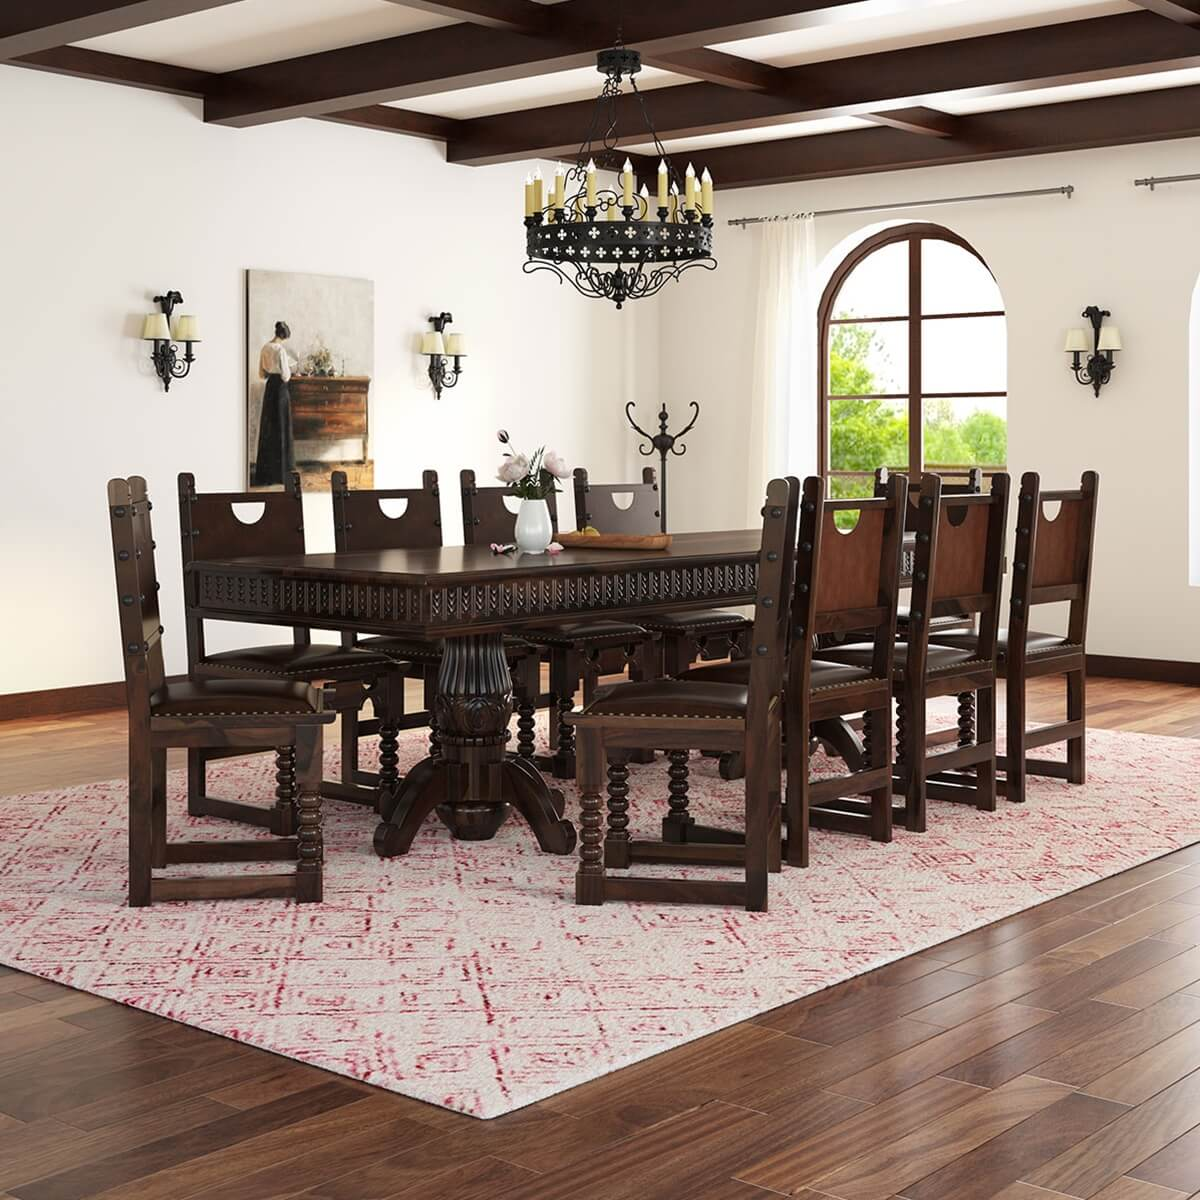 Nottingham solid wood large rustic dining room table chair set for Large dining room table